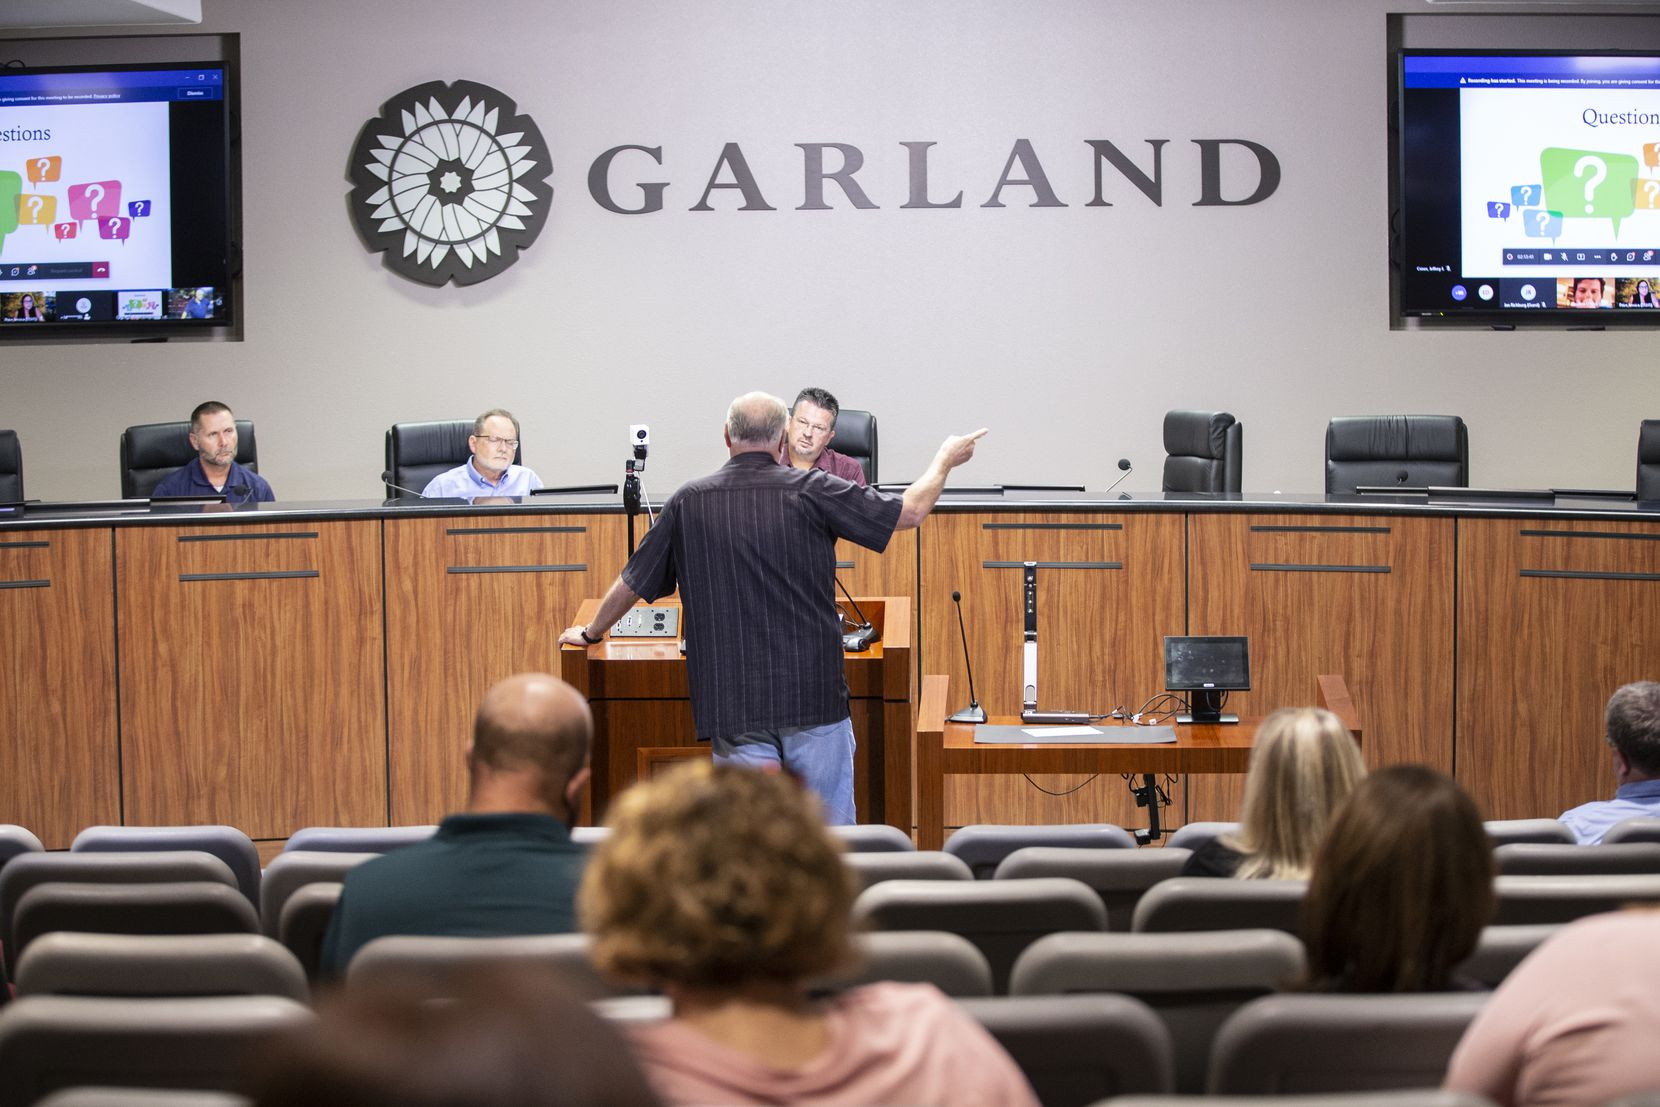 Mike Harbison, a resident of Garland, speaks during a virtual public meeting hosted by the Environmental Protection Agency at Garland Town Hall on Thursday, August 5, 2021. The agency discussed his remediation plans after finding high levels of lead and arsenic in the area, including at a creek and at Park Crest Elementary School.